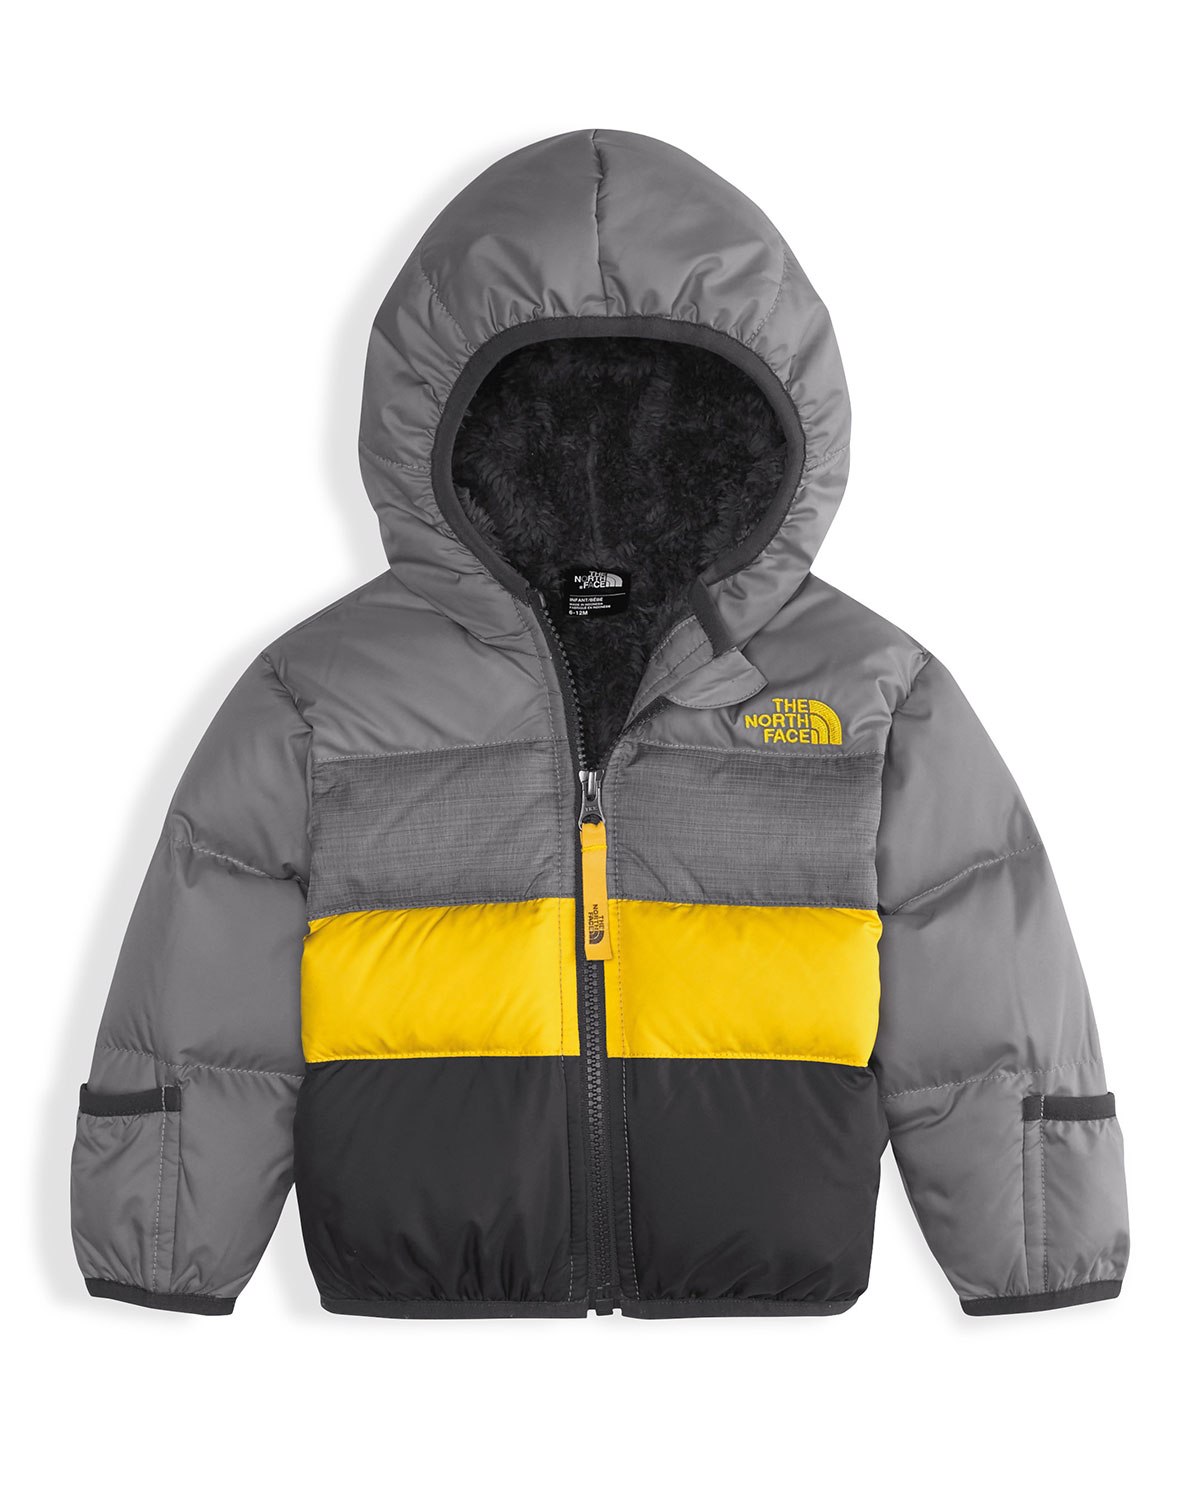 f9a411fbd The North Face Boys' Moondoggy 2.0 Down Quilted Jacket, Gray, Size 3 ...